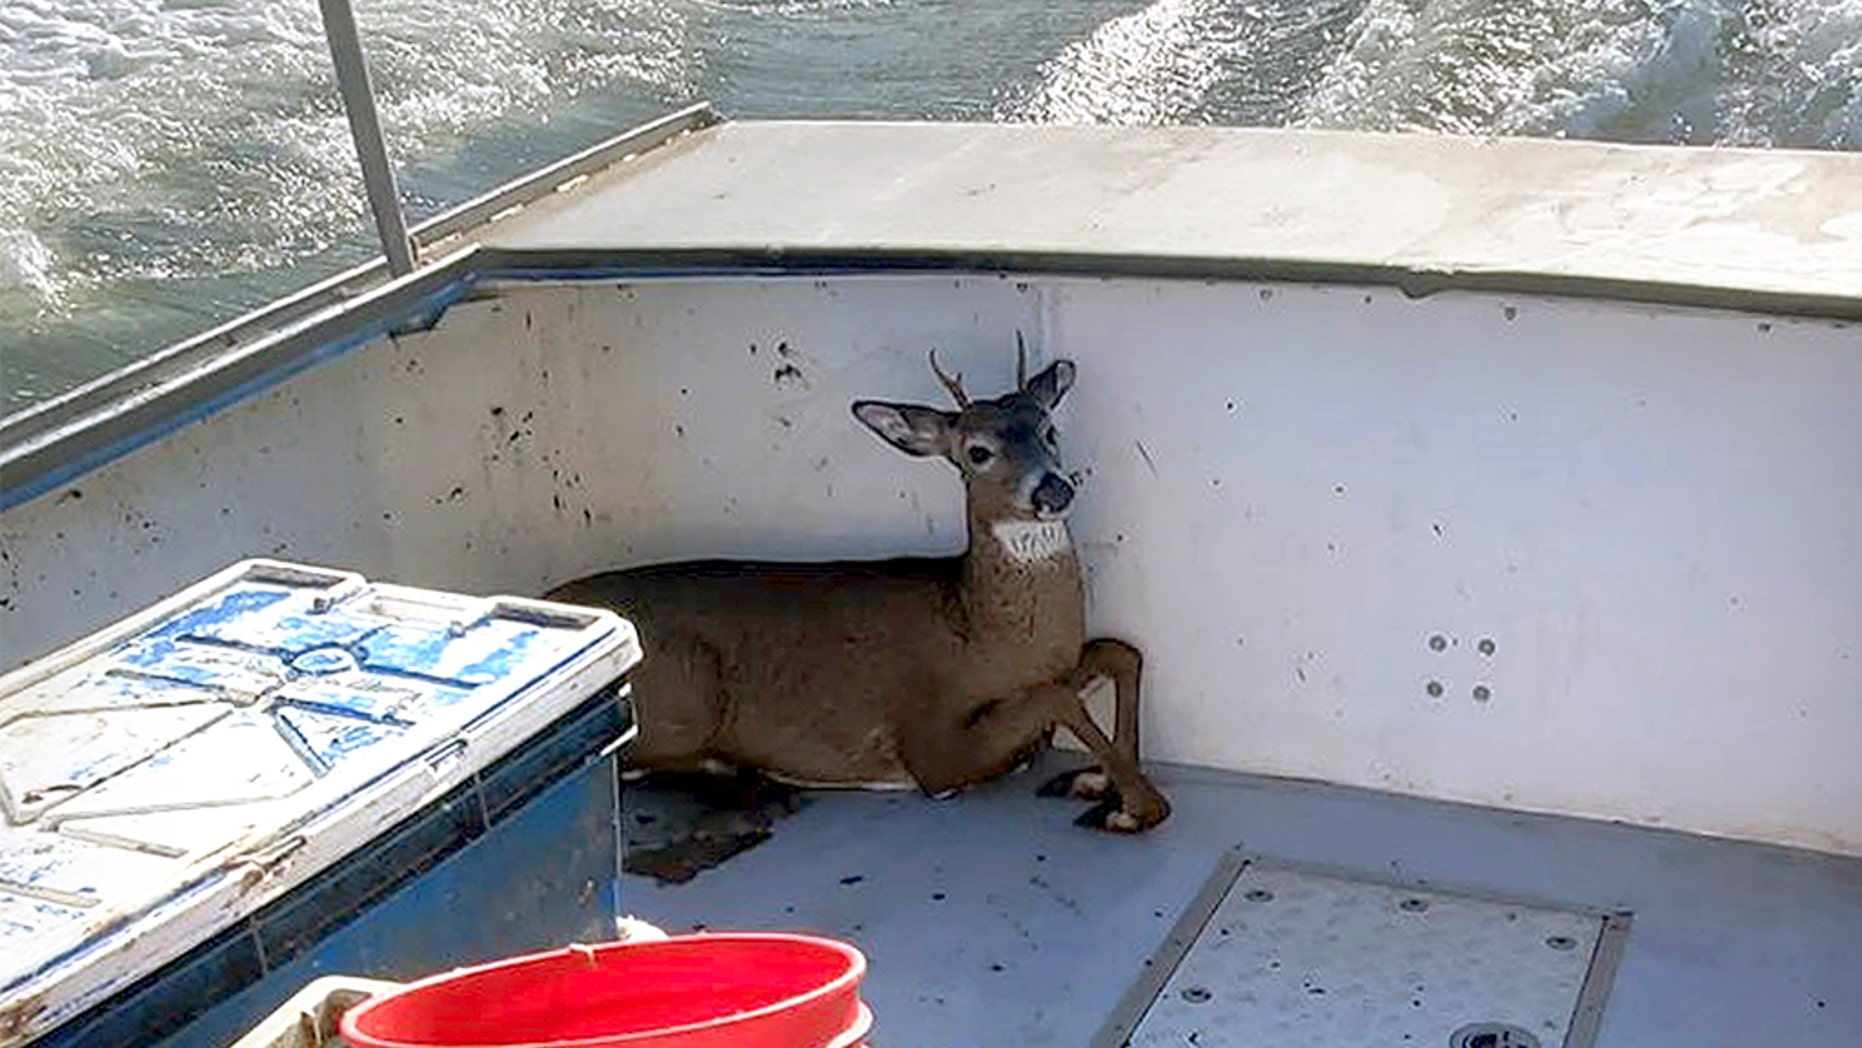 The rescued deer rests in a boat on its way back to shore. (Jared Thaxter via AP)